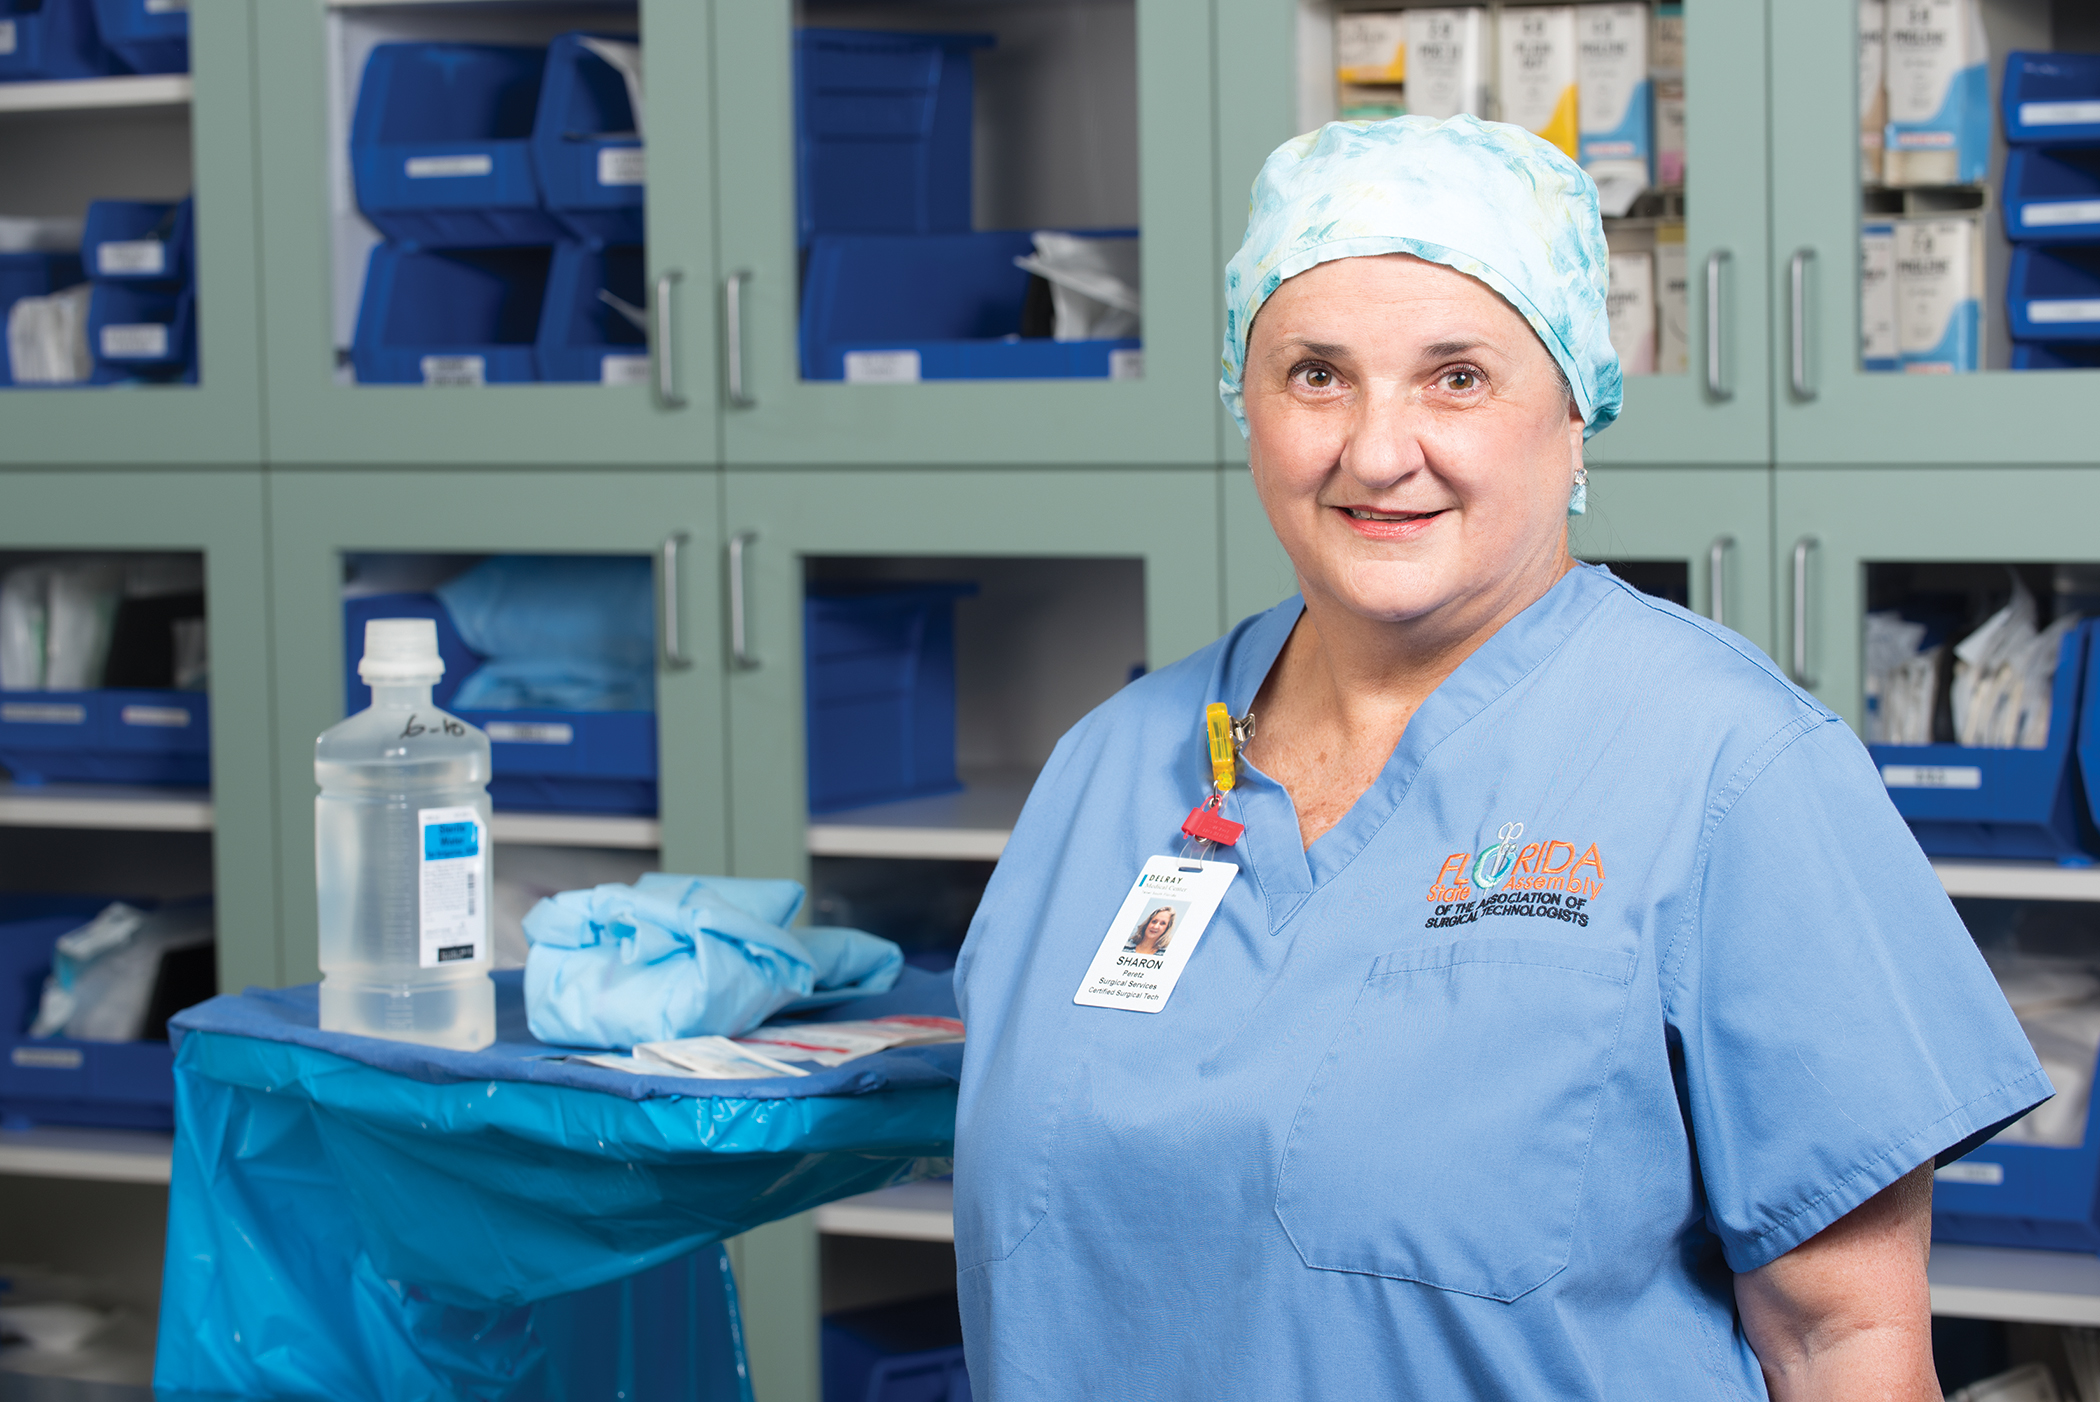 Sharon Peretz in her new career as a surgical technologist.